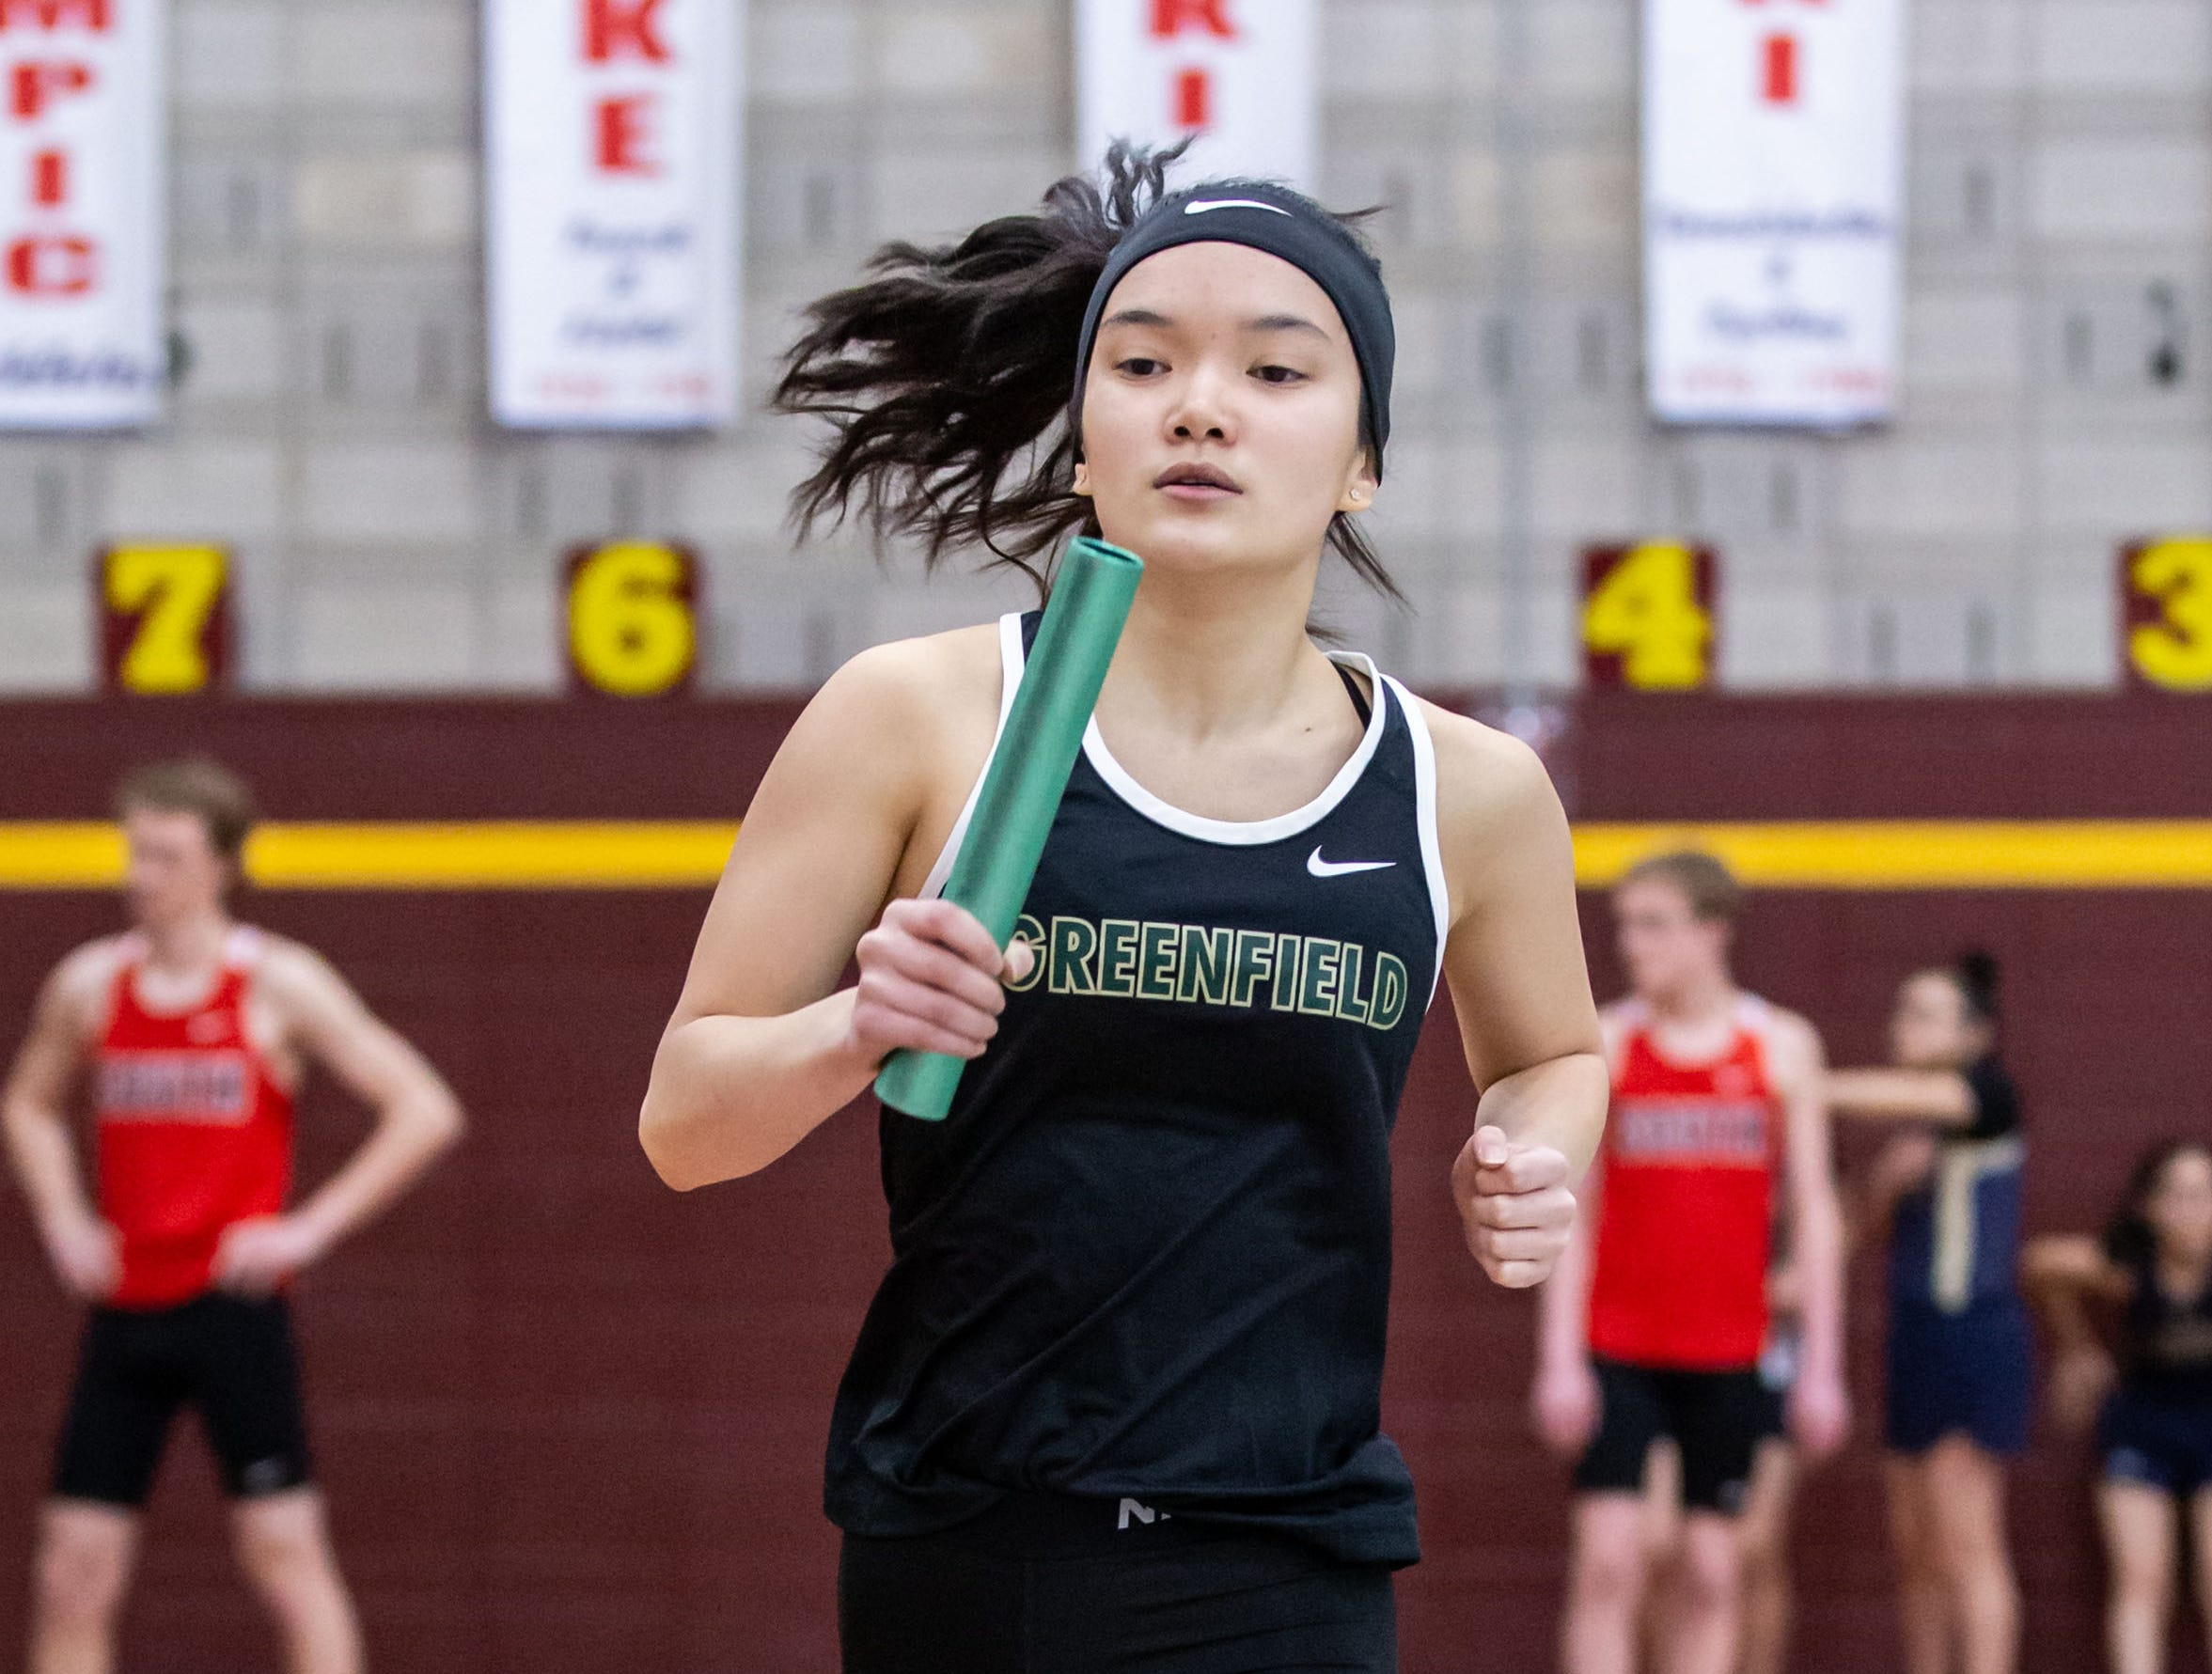 Greenfield's Lilly Ho competes in the distance medley relay at the Reinhard Bulldog Relays hosted by West Allis Central on Friday, March 15, 2019.